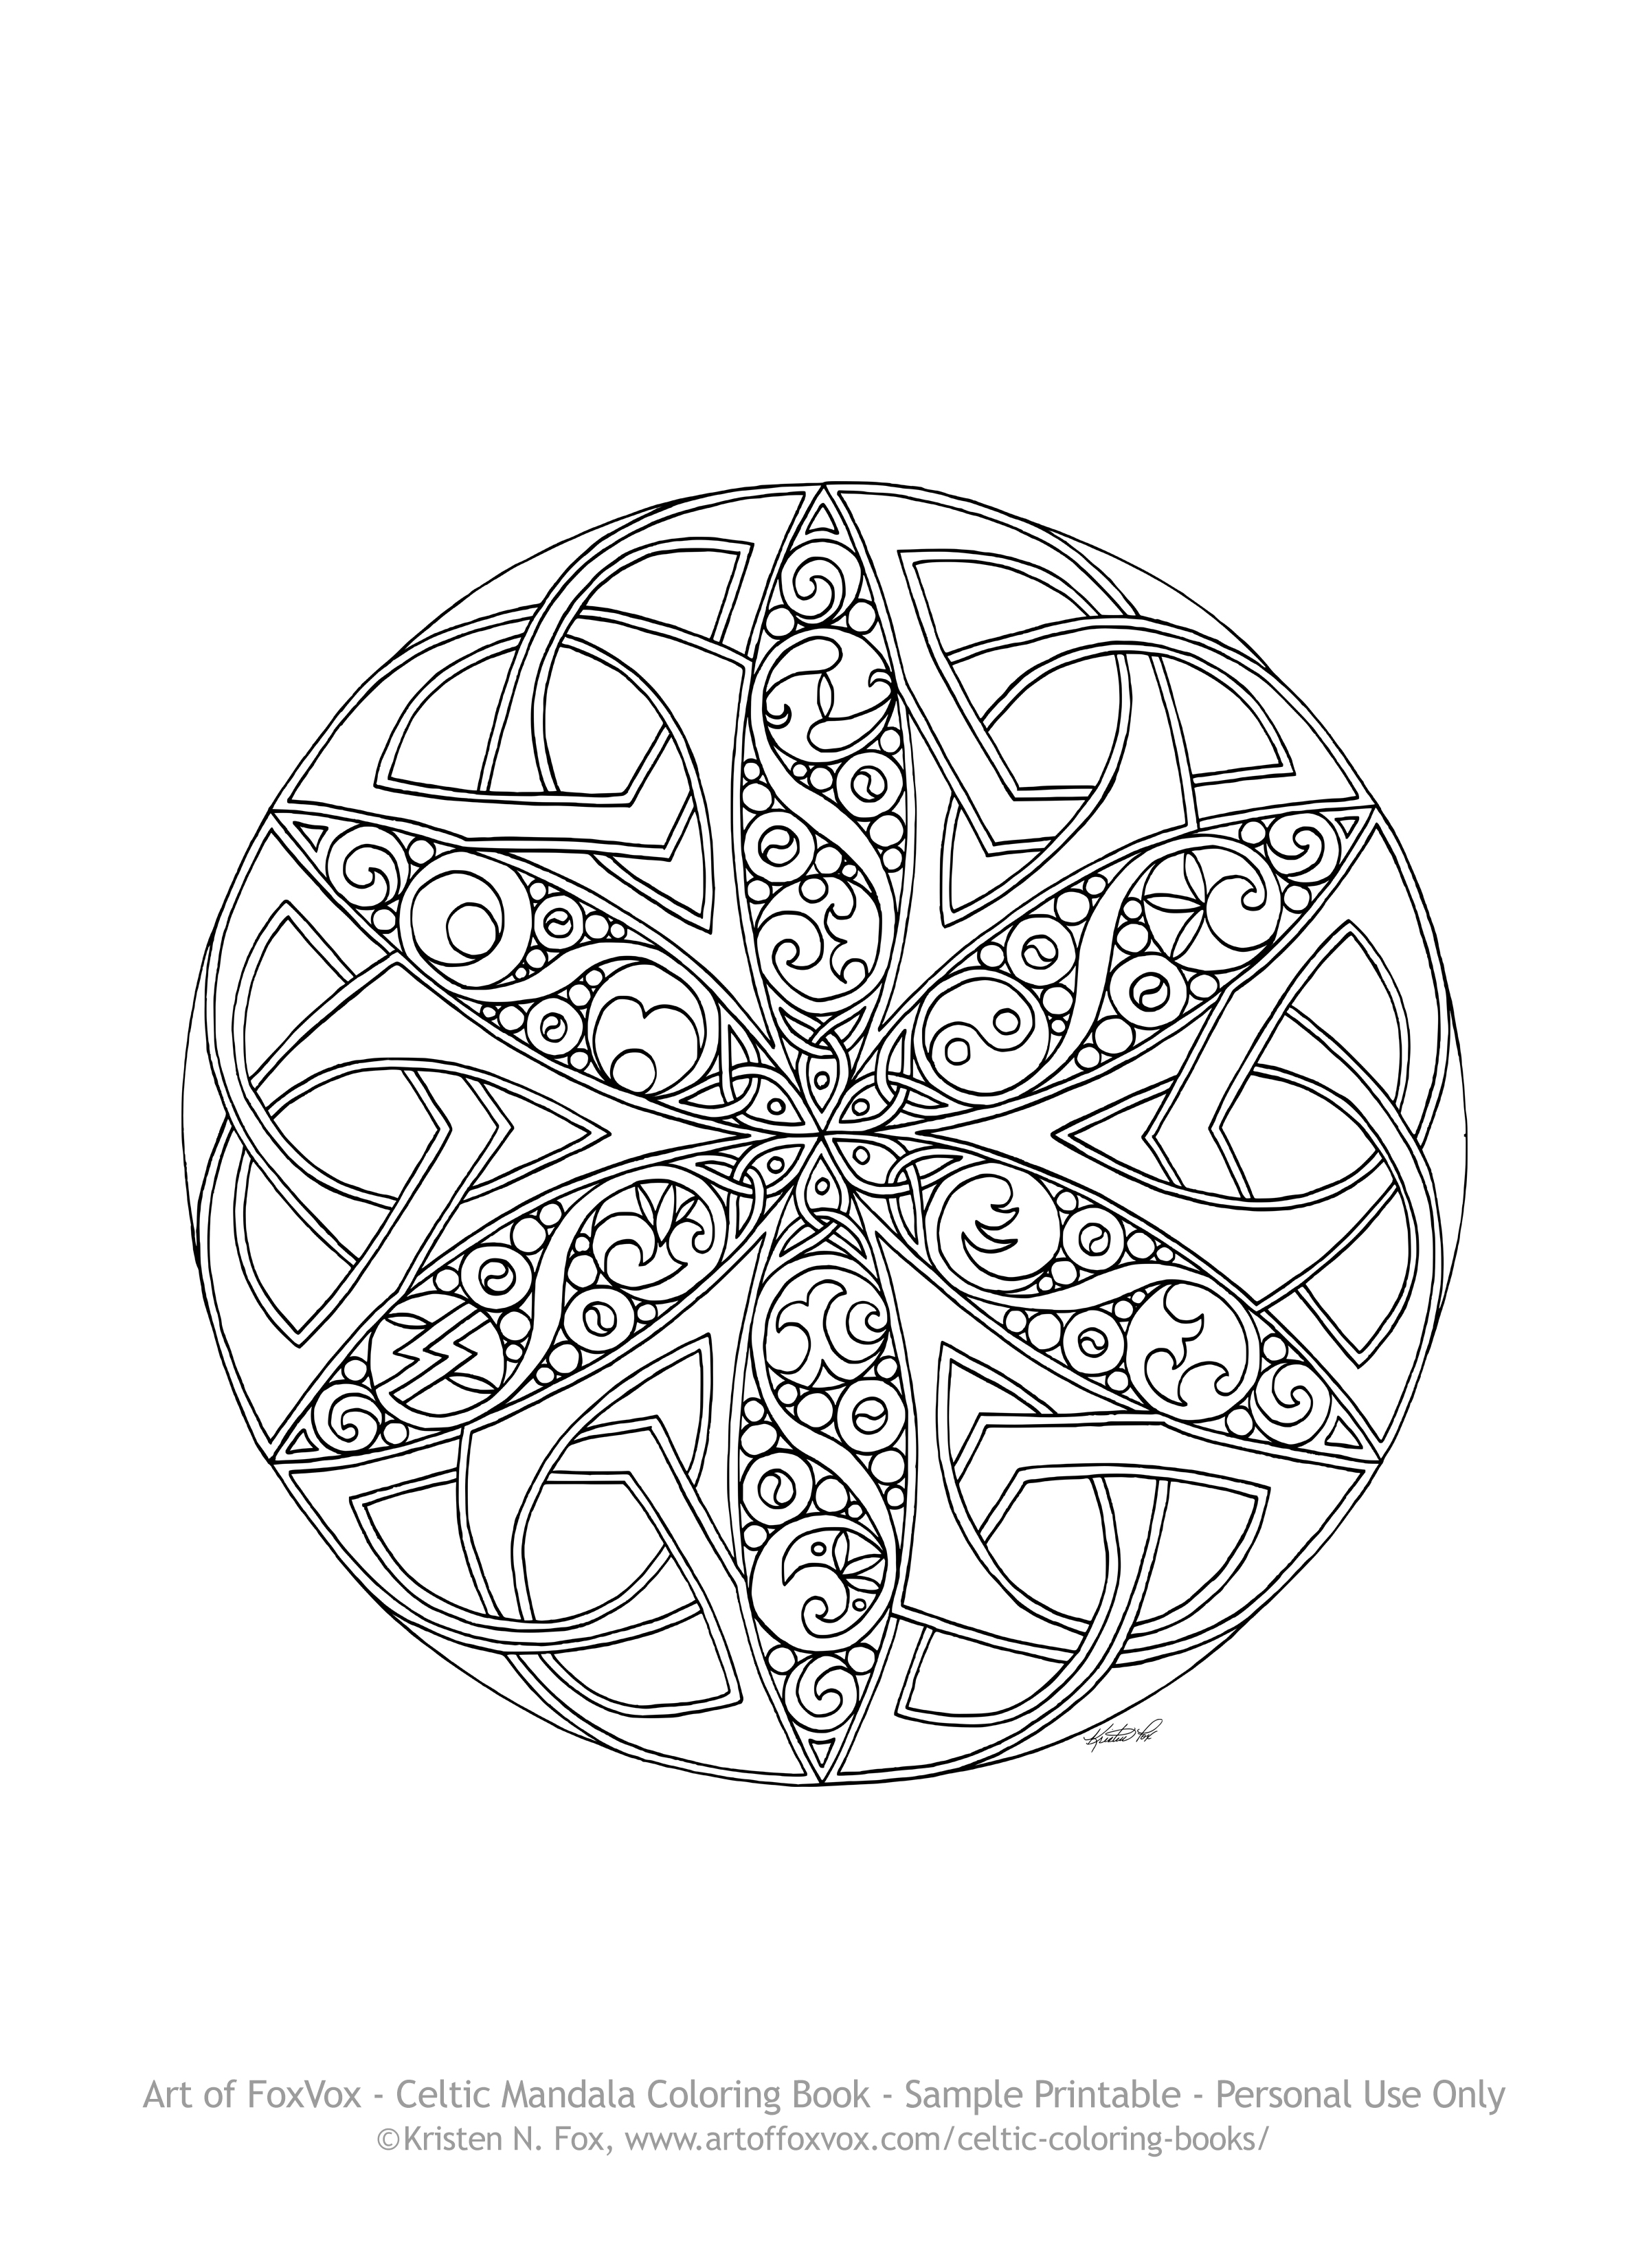 Printable Celtic Mandala Coloring Pages Coloring Pages Ideas